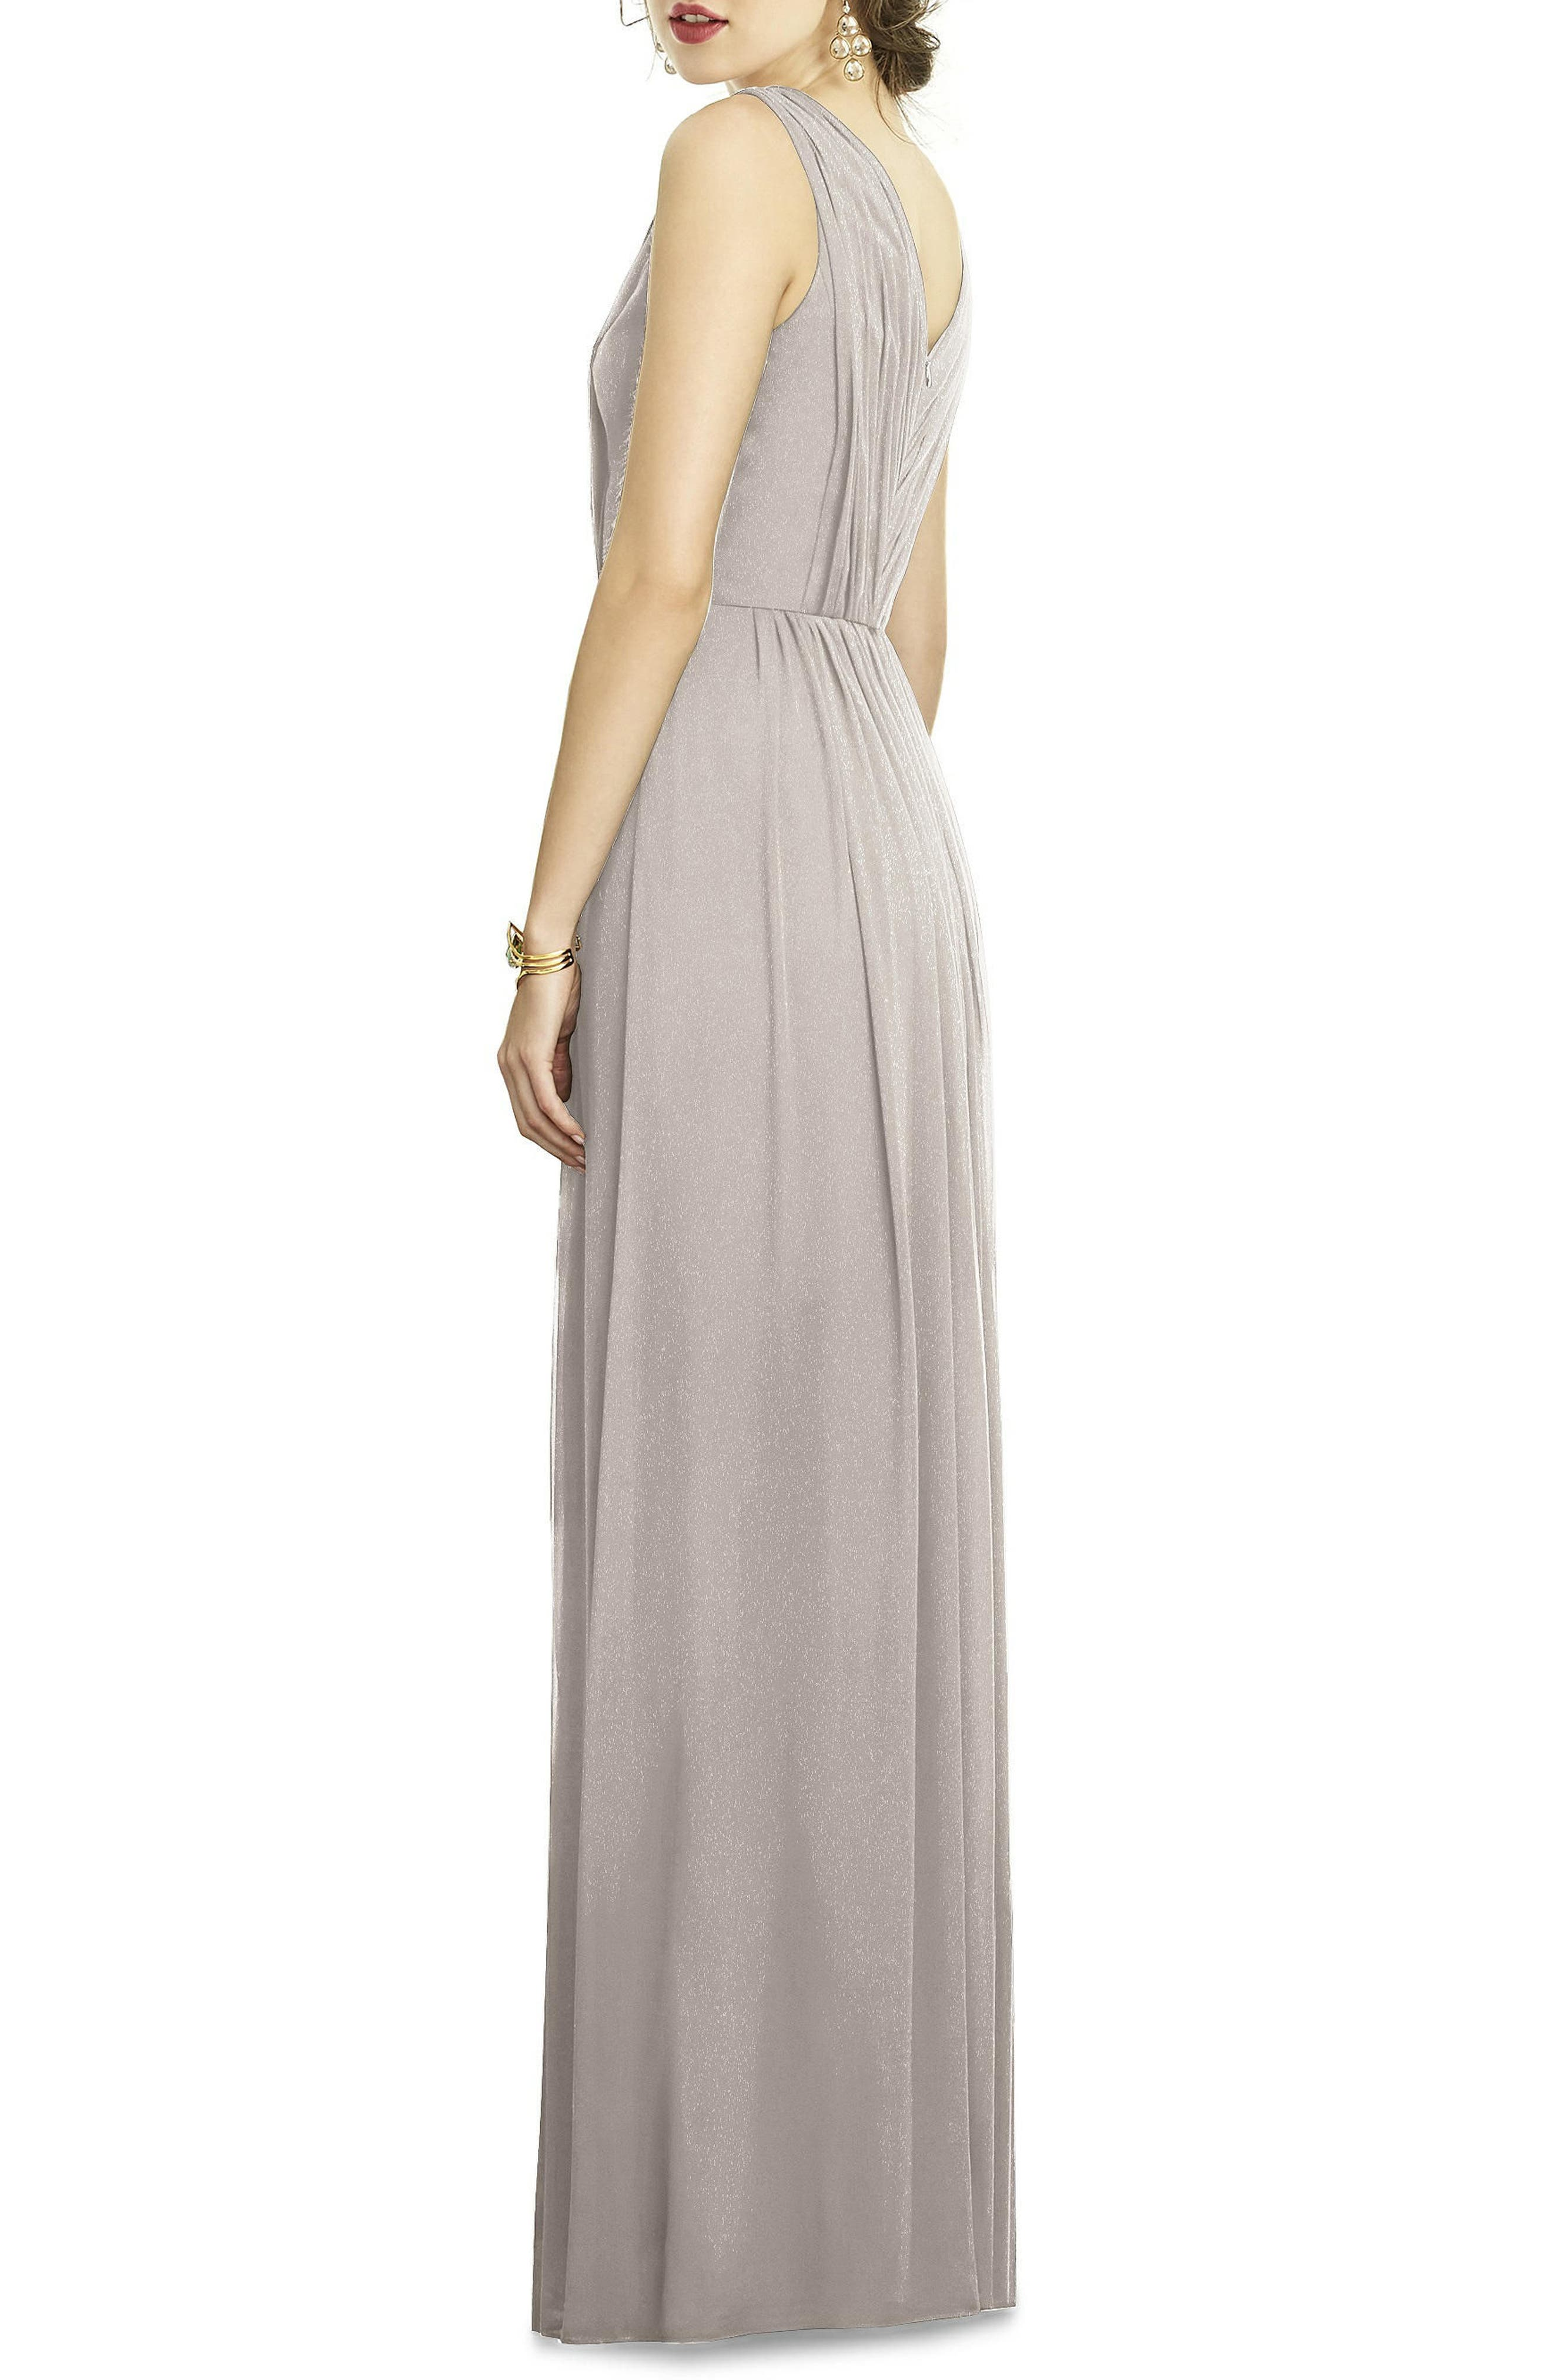 DESSY COLLECTION, Shirred Shimmer Chiffon Gown, Alternate thumbnail 2, color, TAUPE SILVER